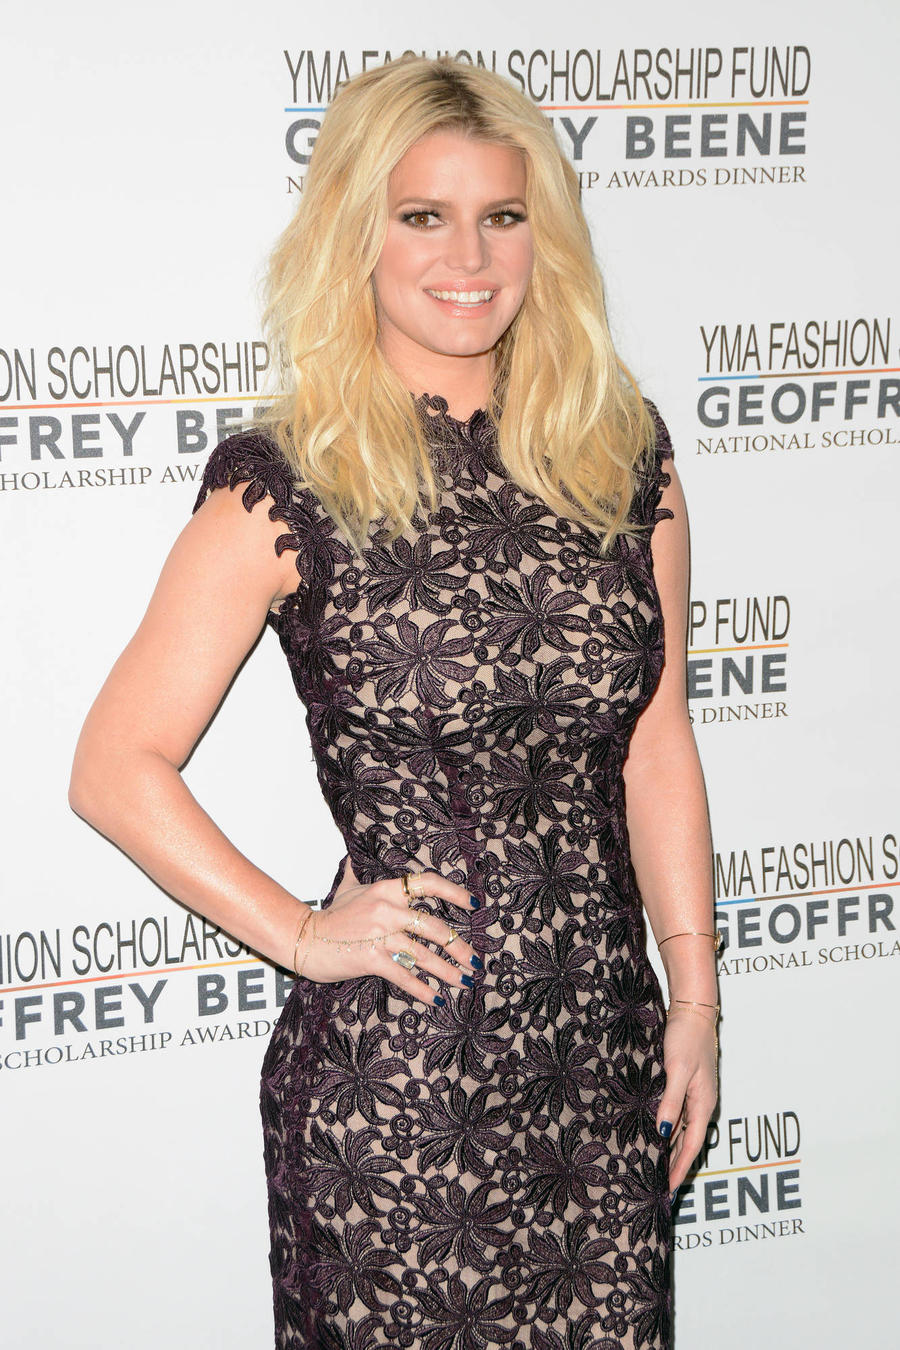 Jessica Simpson Once Considered Breast Reduction